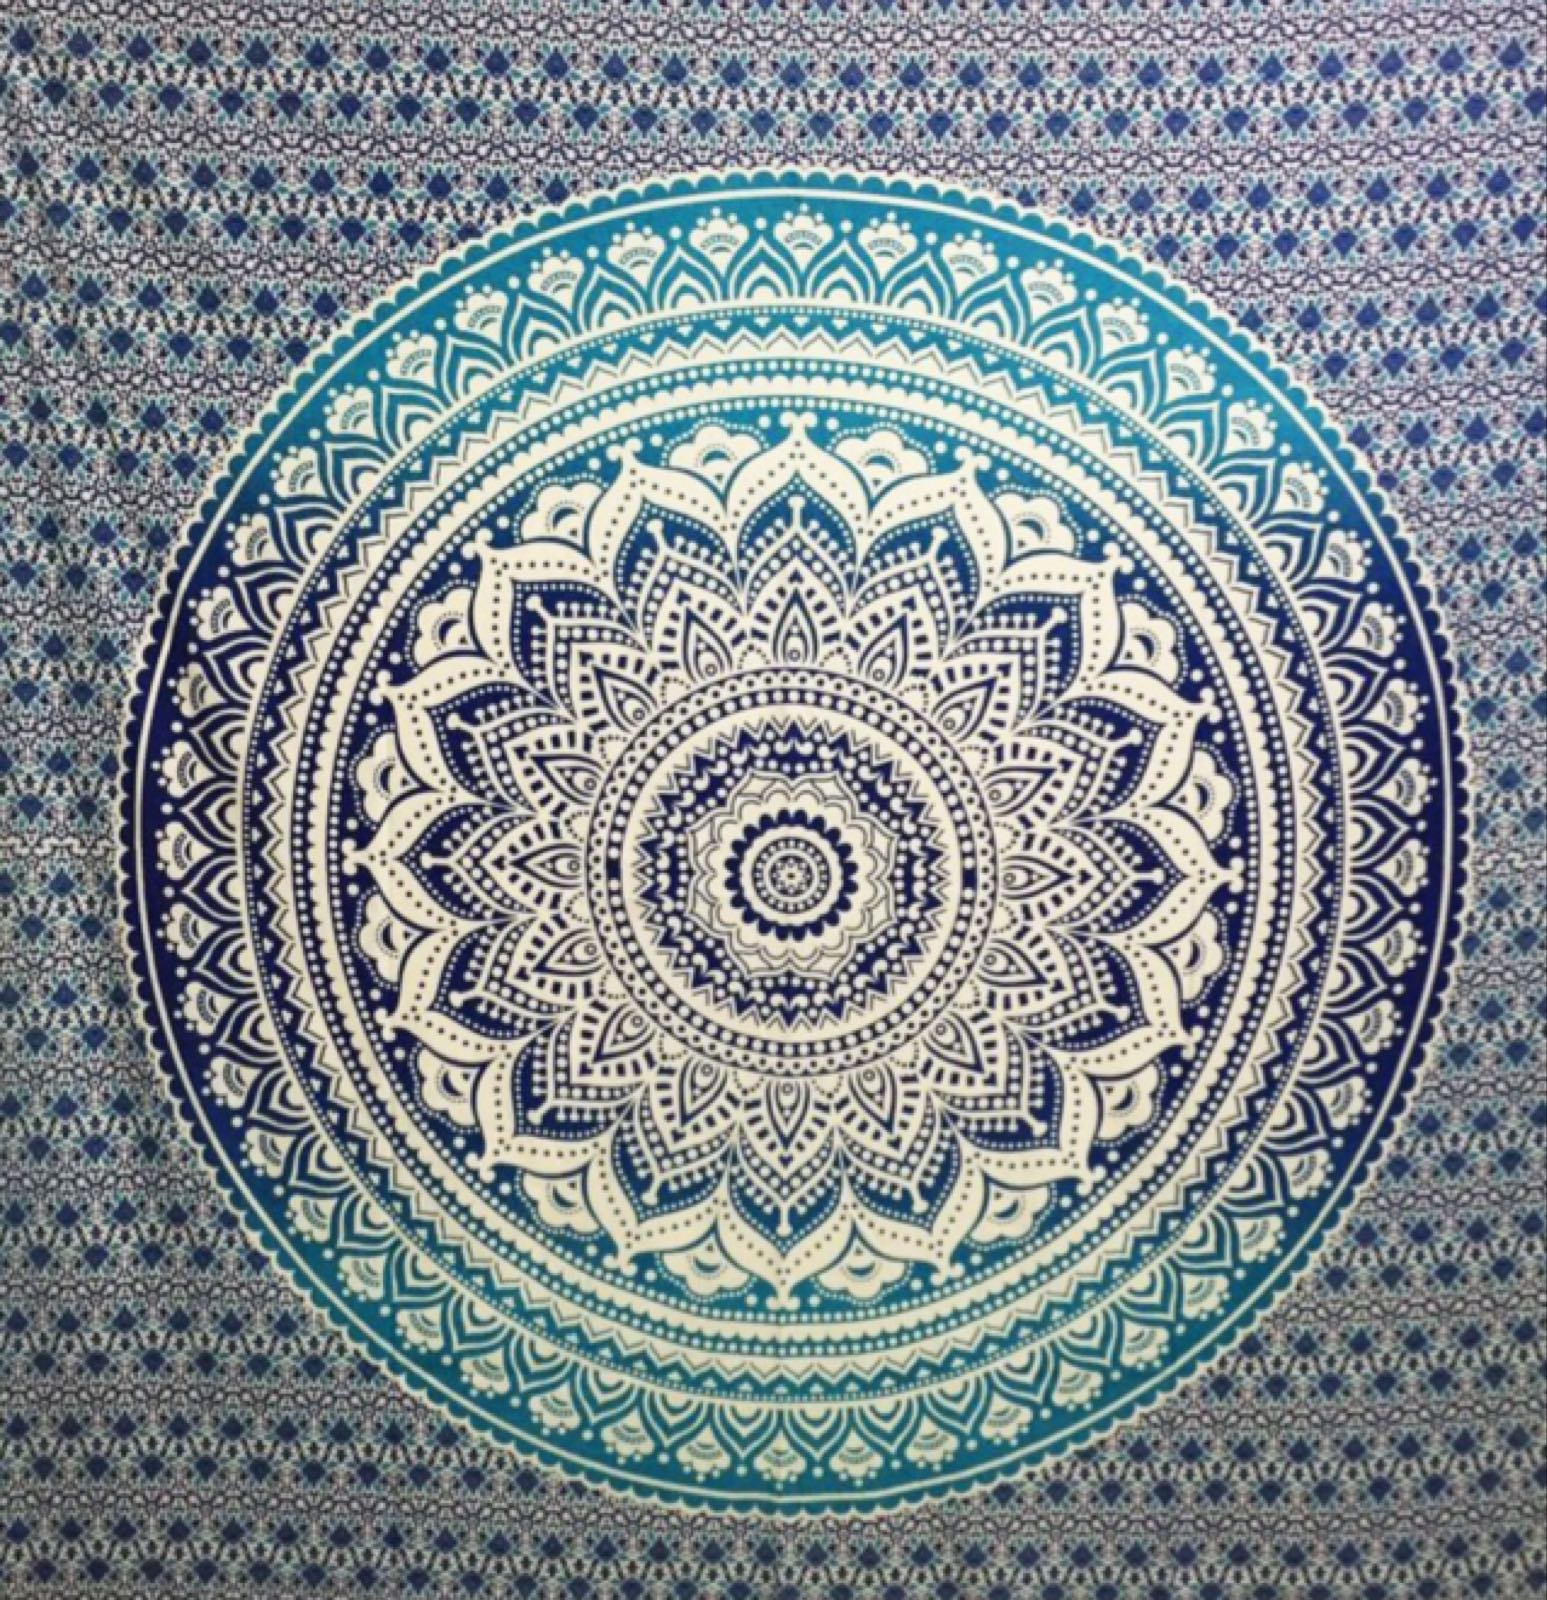 Cotton lotus Mandala